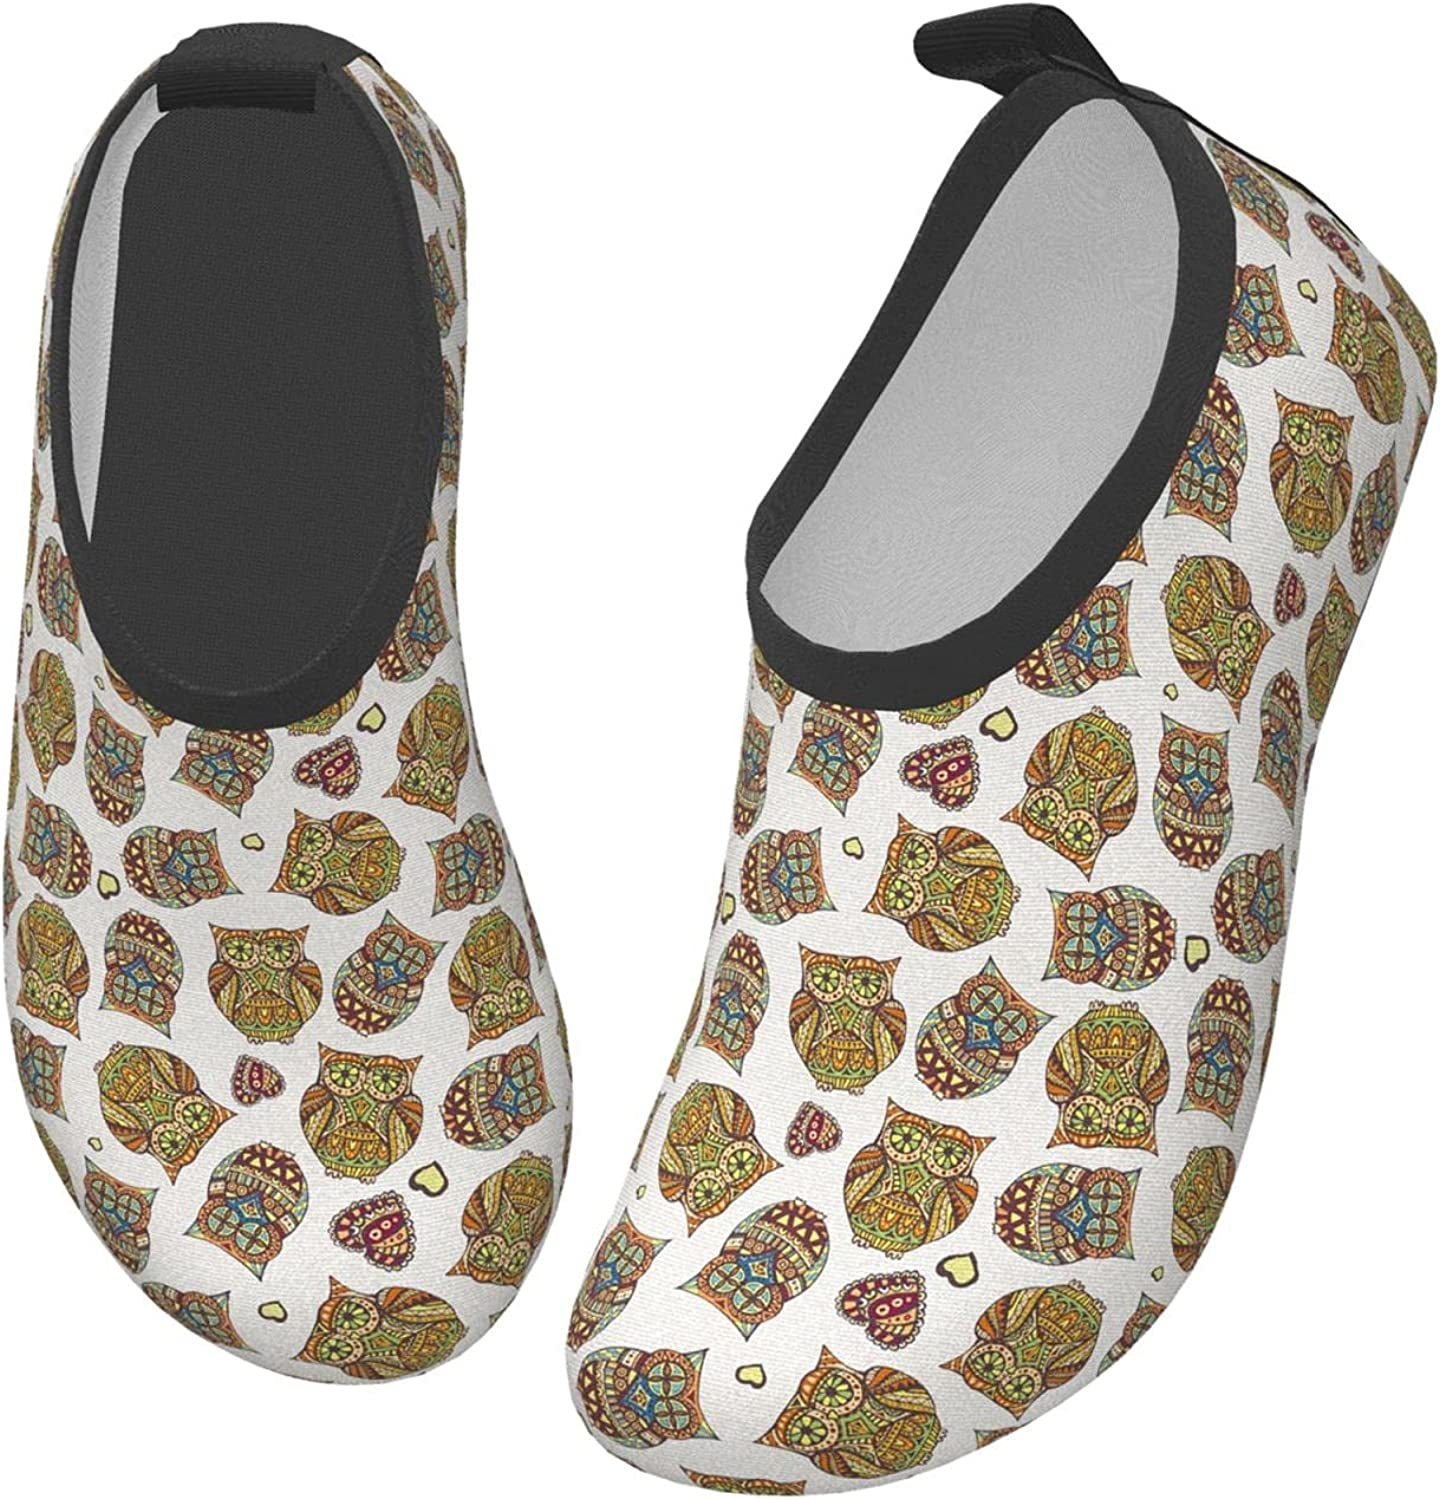 Halloween Owl Funny Autumn Animal Children's Water Shoes Feel Barefoot for Swimming Beach Boating Surfing Yoga